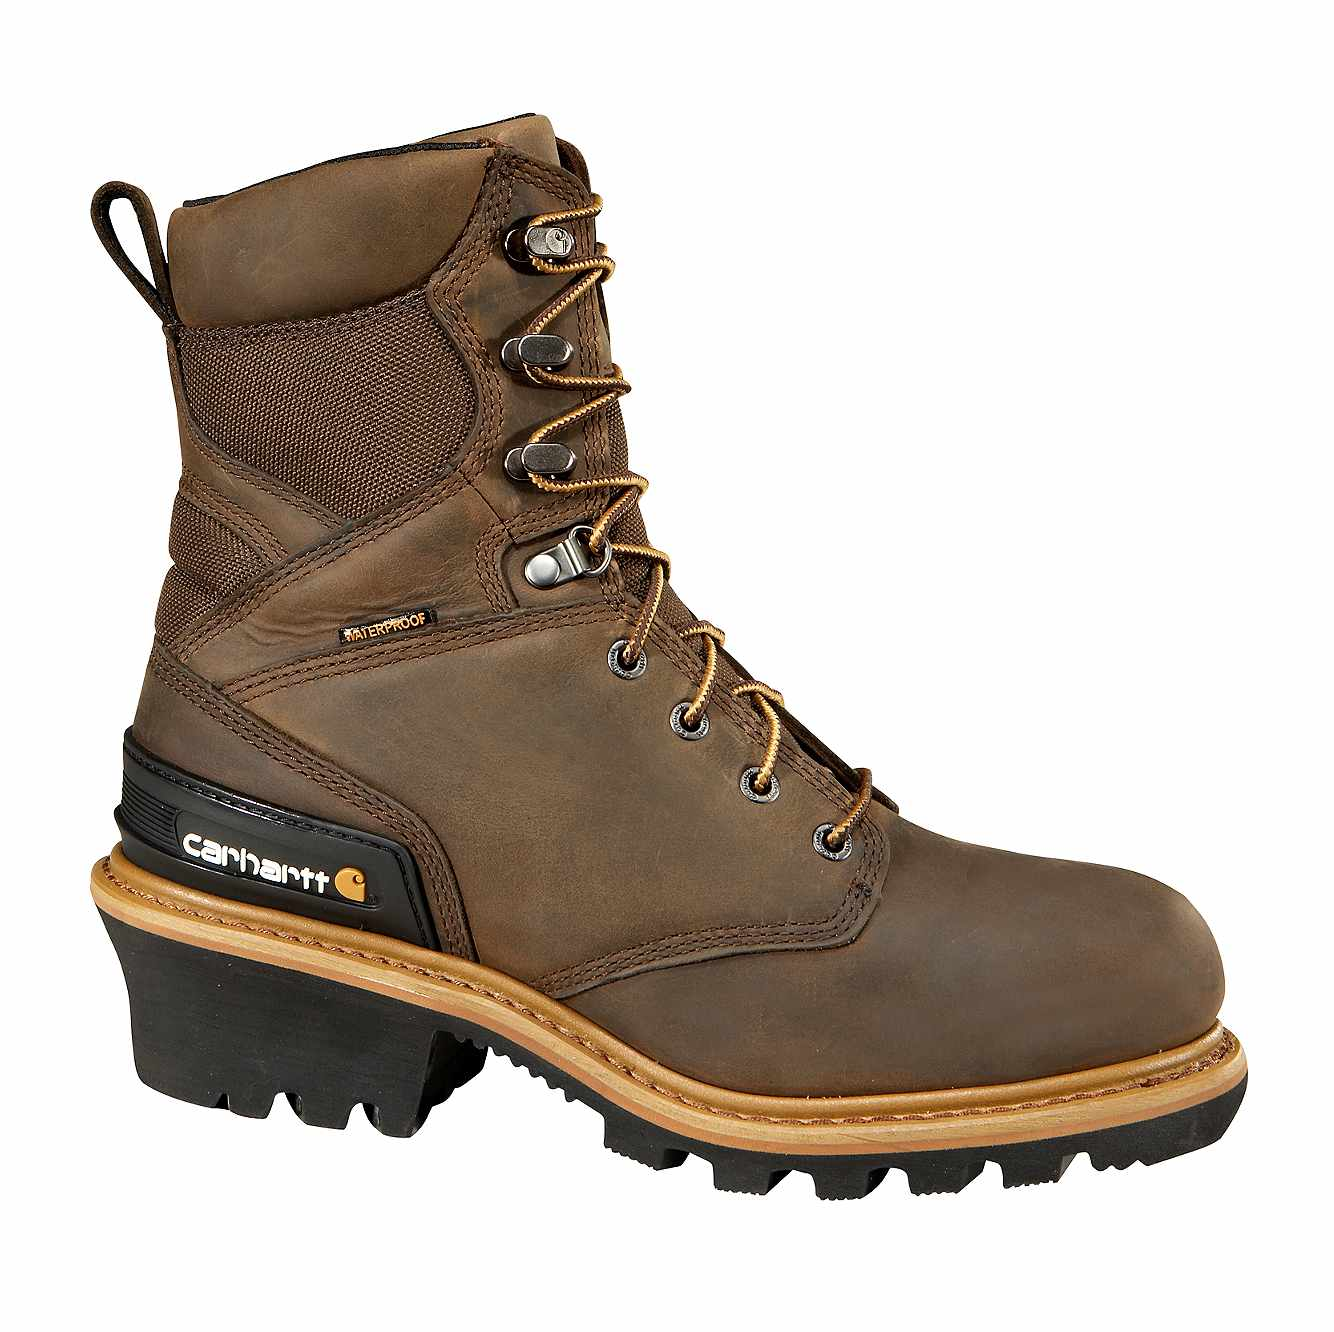 Picture of 8-Inch Insulated Composite Toe Climbing Boot in CHO-Crazy Horse Brown Oil Tanned